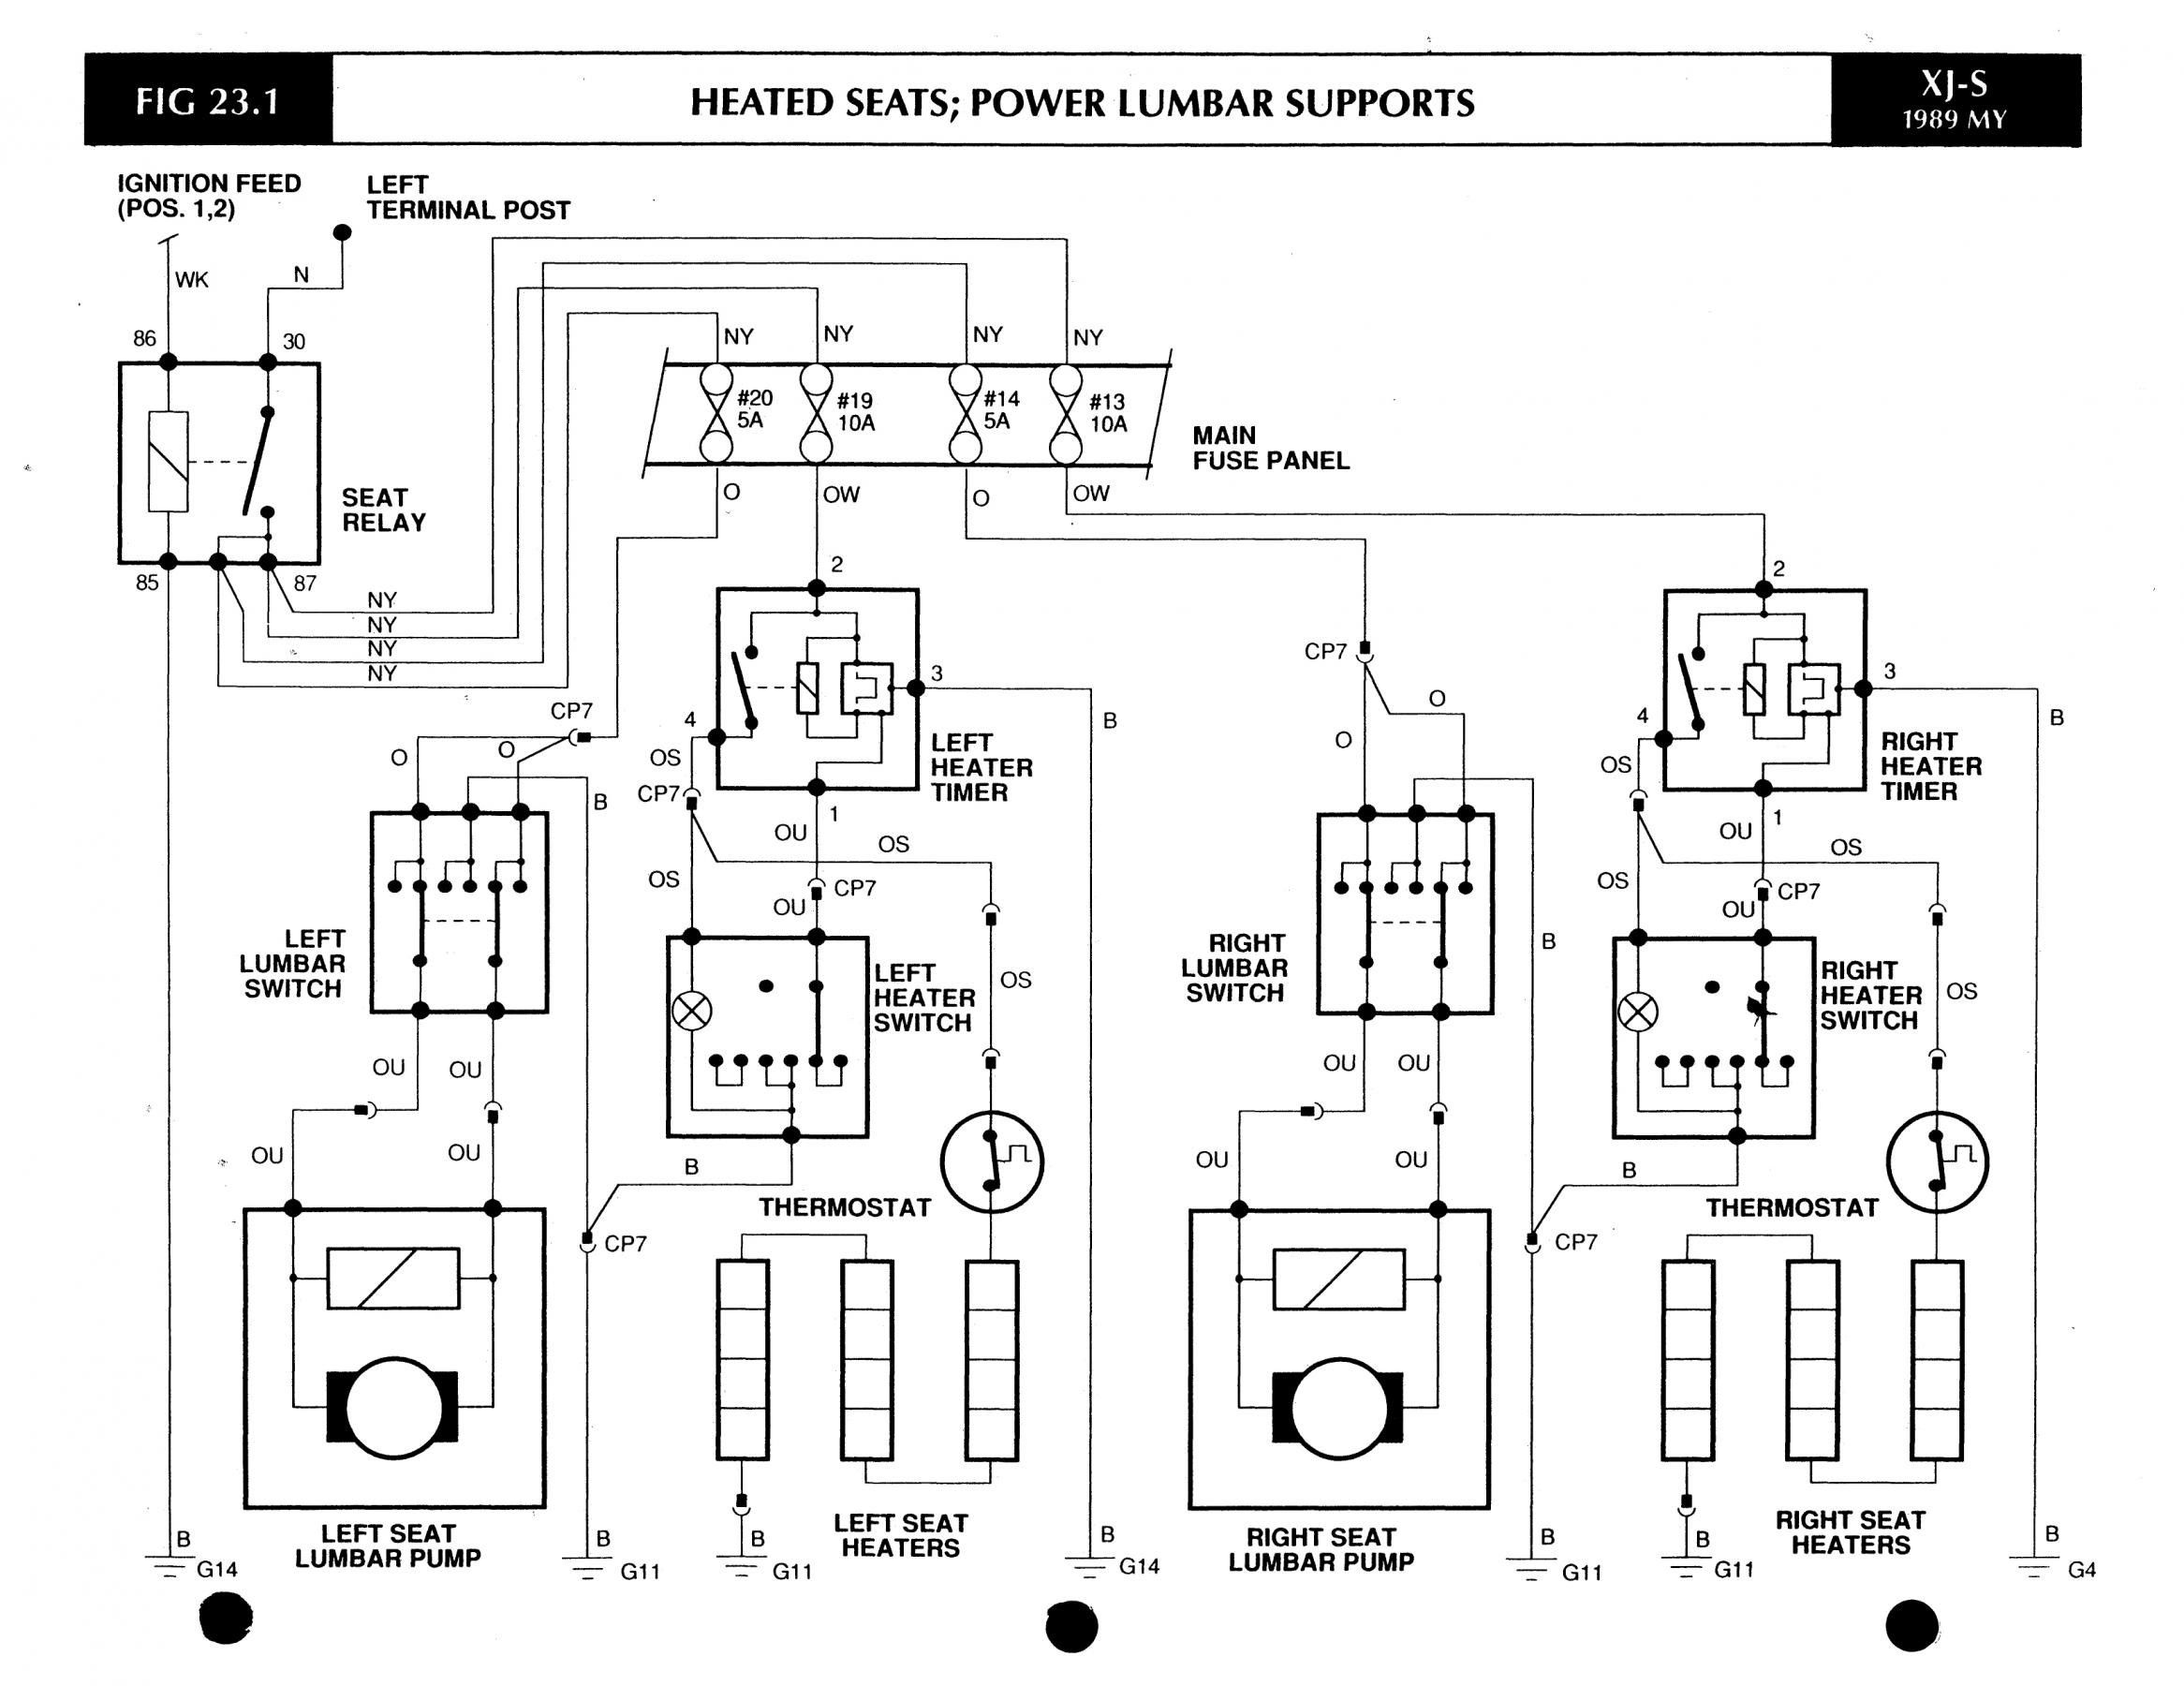 jaguar radio wiring diagram Collection-Jaguar Alternator Wiring Diagram Fresh Jaguar S Type Tow Bar Wiring Diagram Valid 1988 Jaguar Radio Wiring 16-p